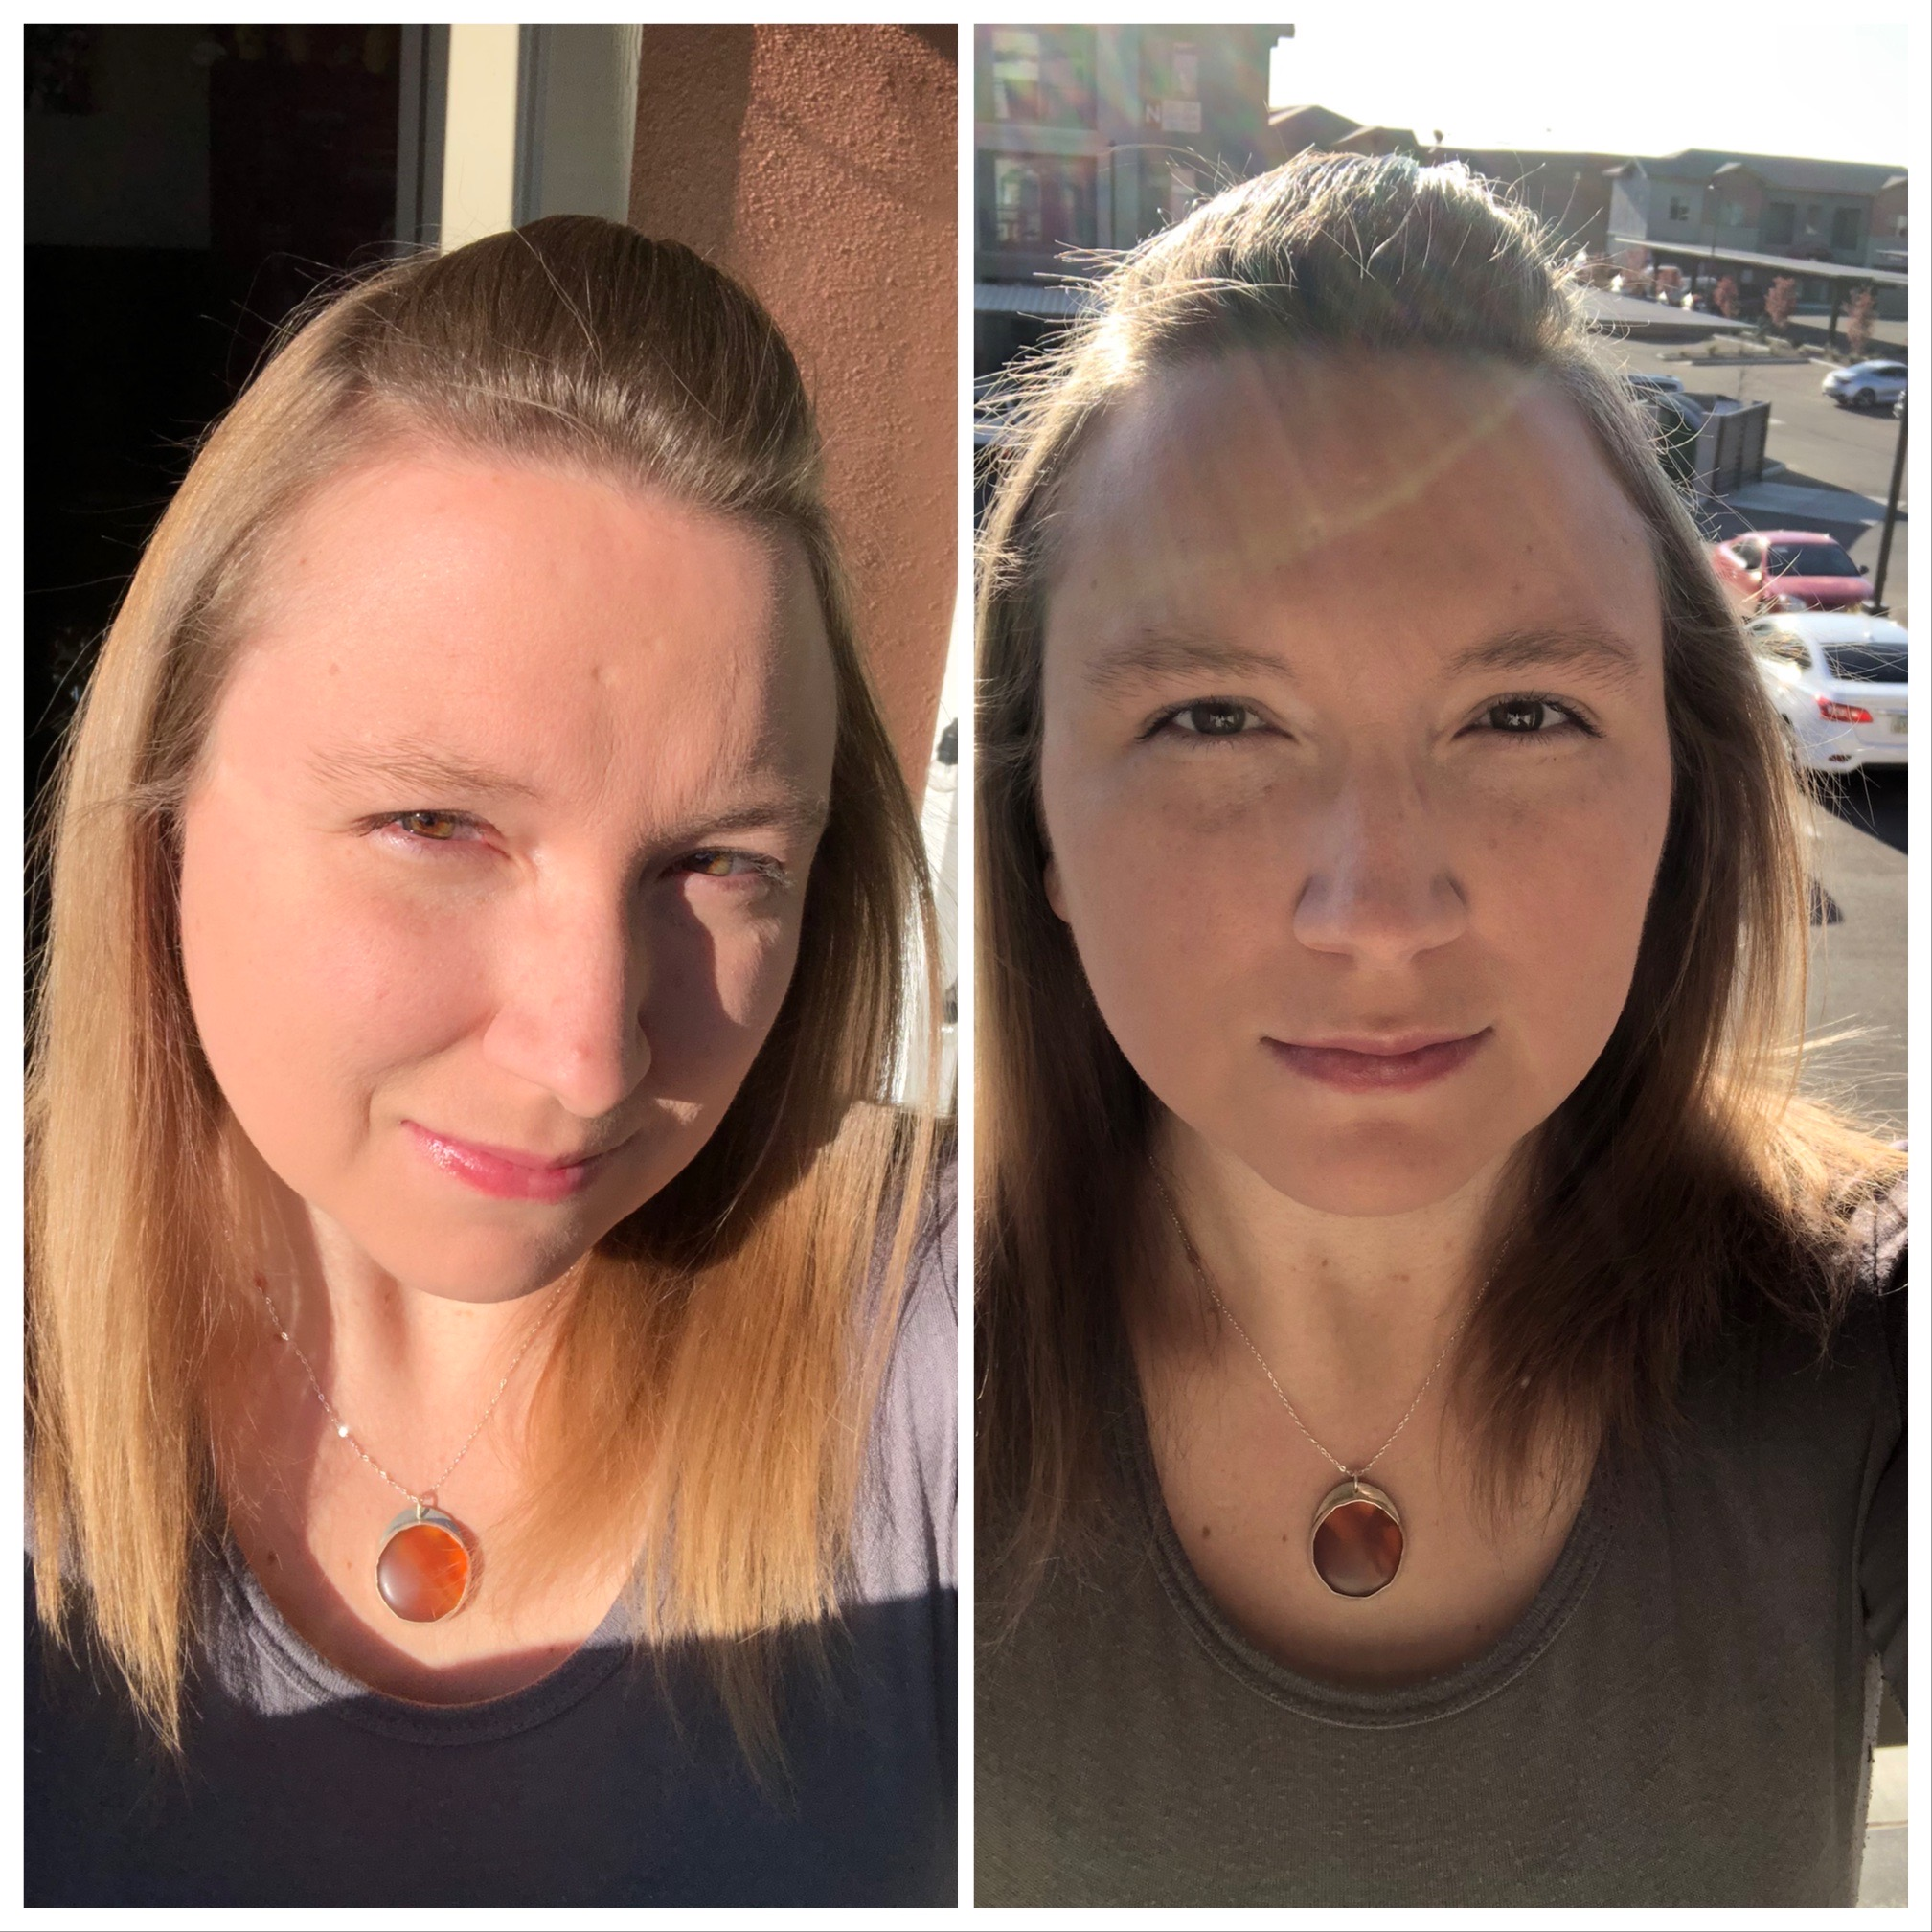 Jewelry Selfie Lighting - Sun